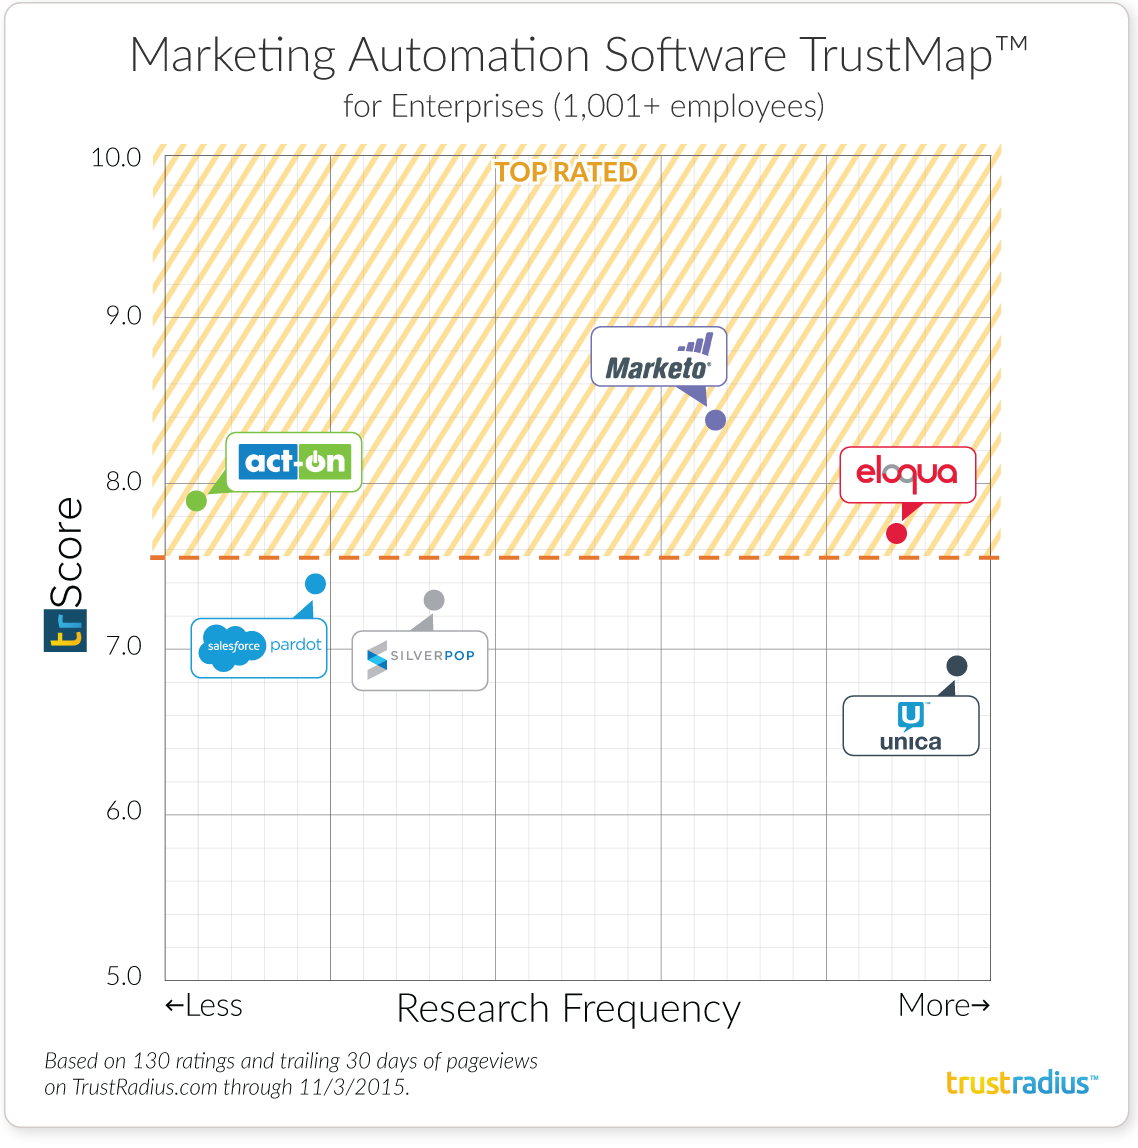 Enterprise Marketing Automation Software TrustMap